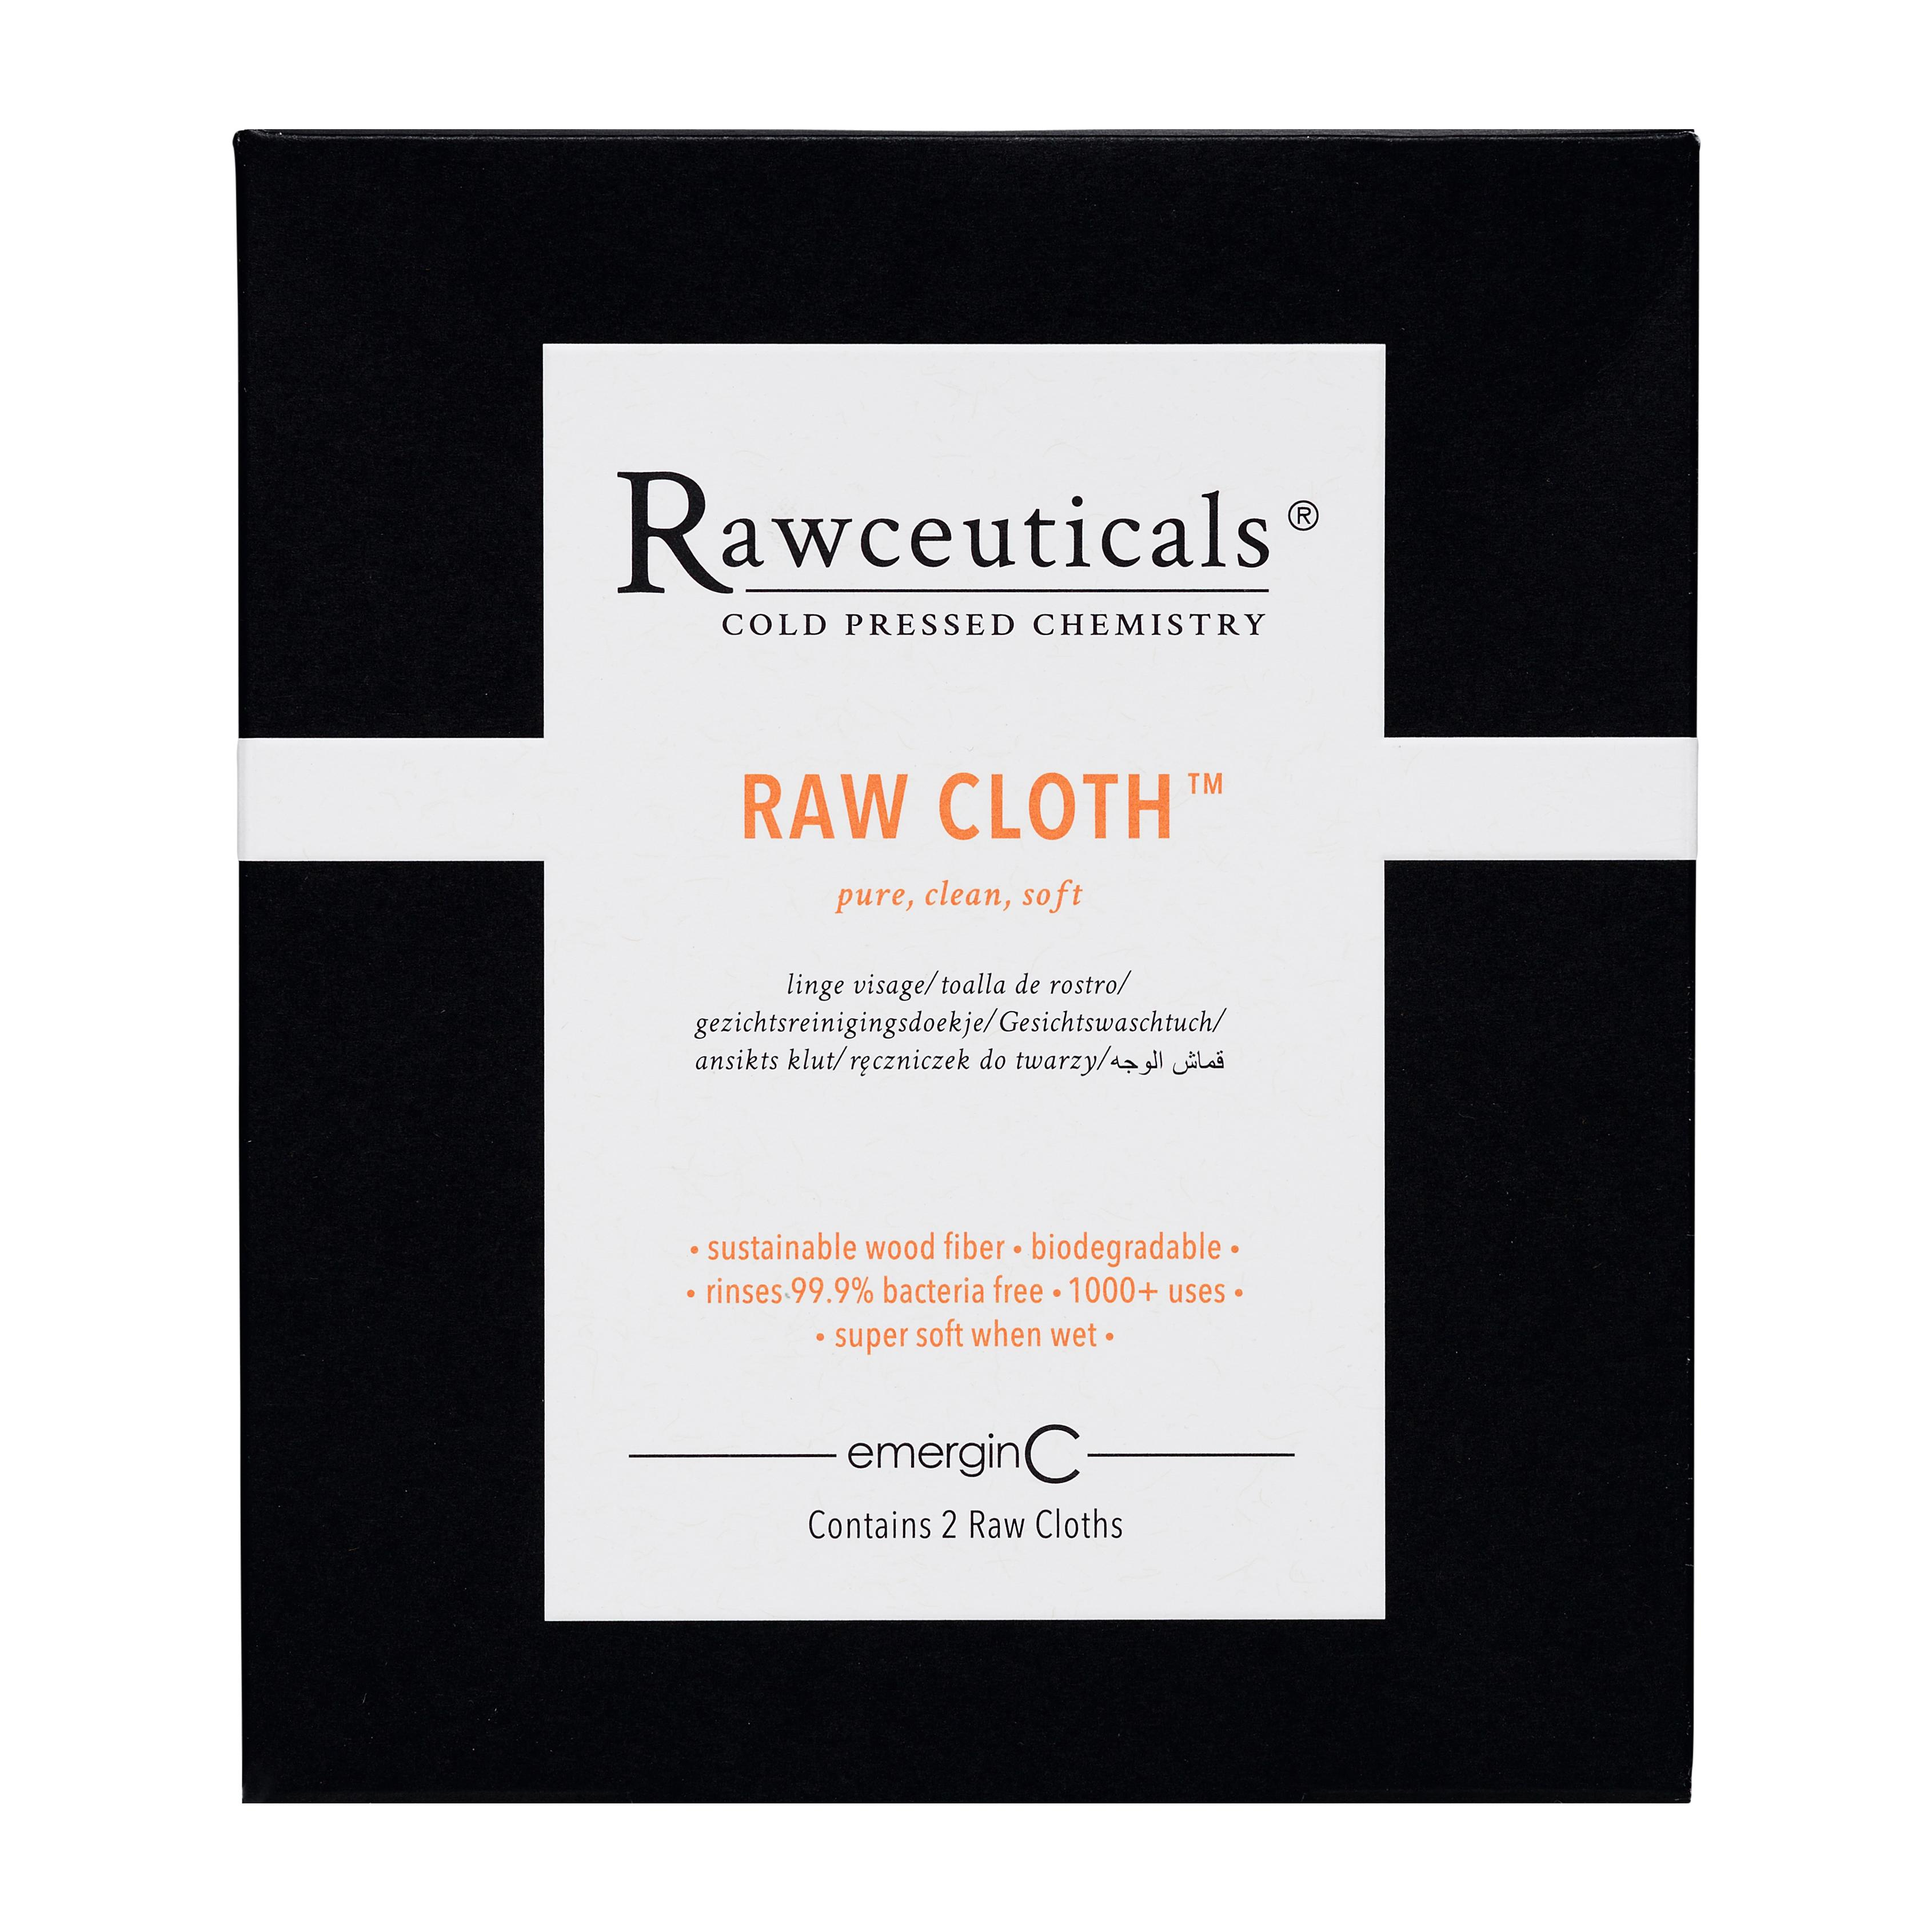 Raw Cloth, a biodegradable face cloth derived from 100 percent wood fibers sourced from sustainably managed forests. (Image: Courtesy Raw Cloth Box)